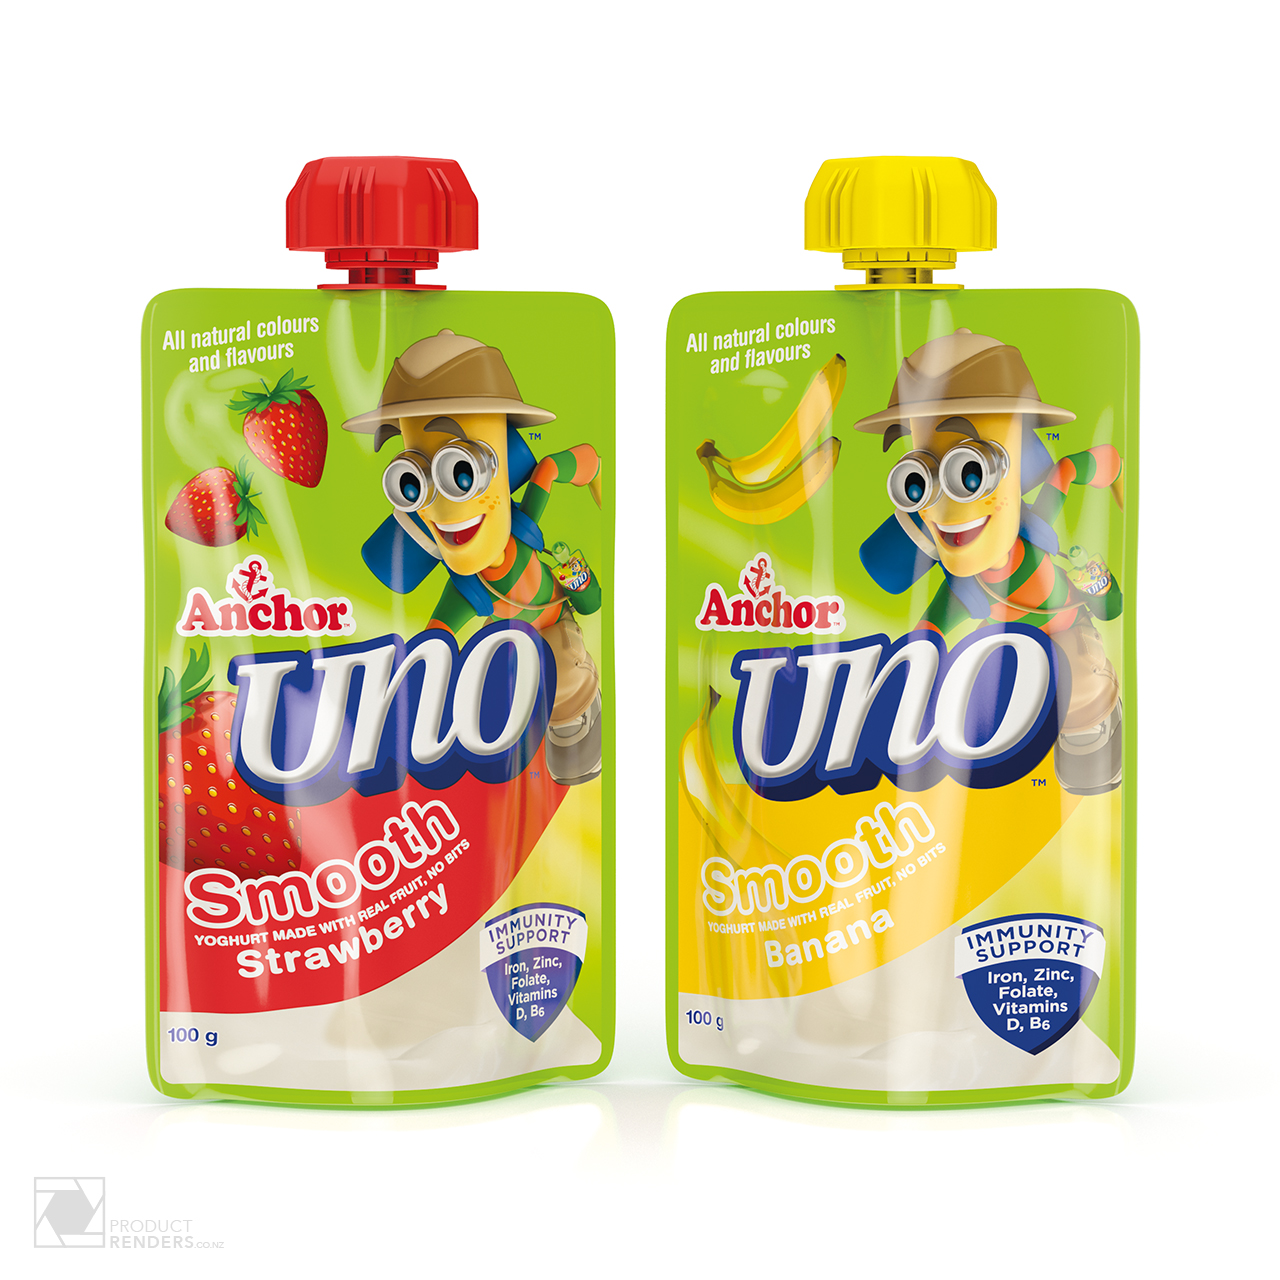 3D render of Anchor Uno's strawberry & banana yoghurt packaging pouch